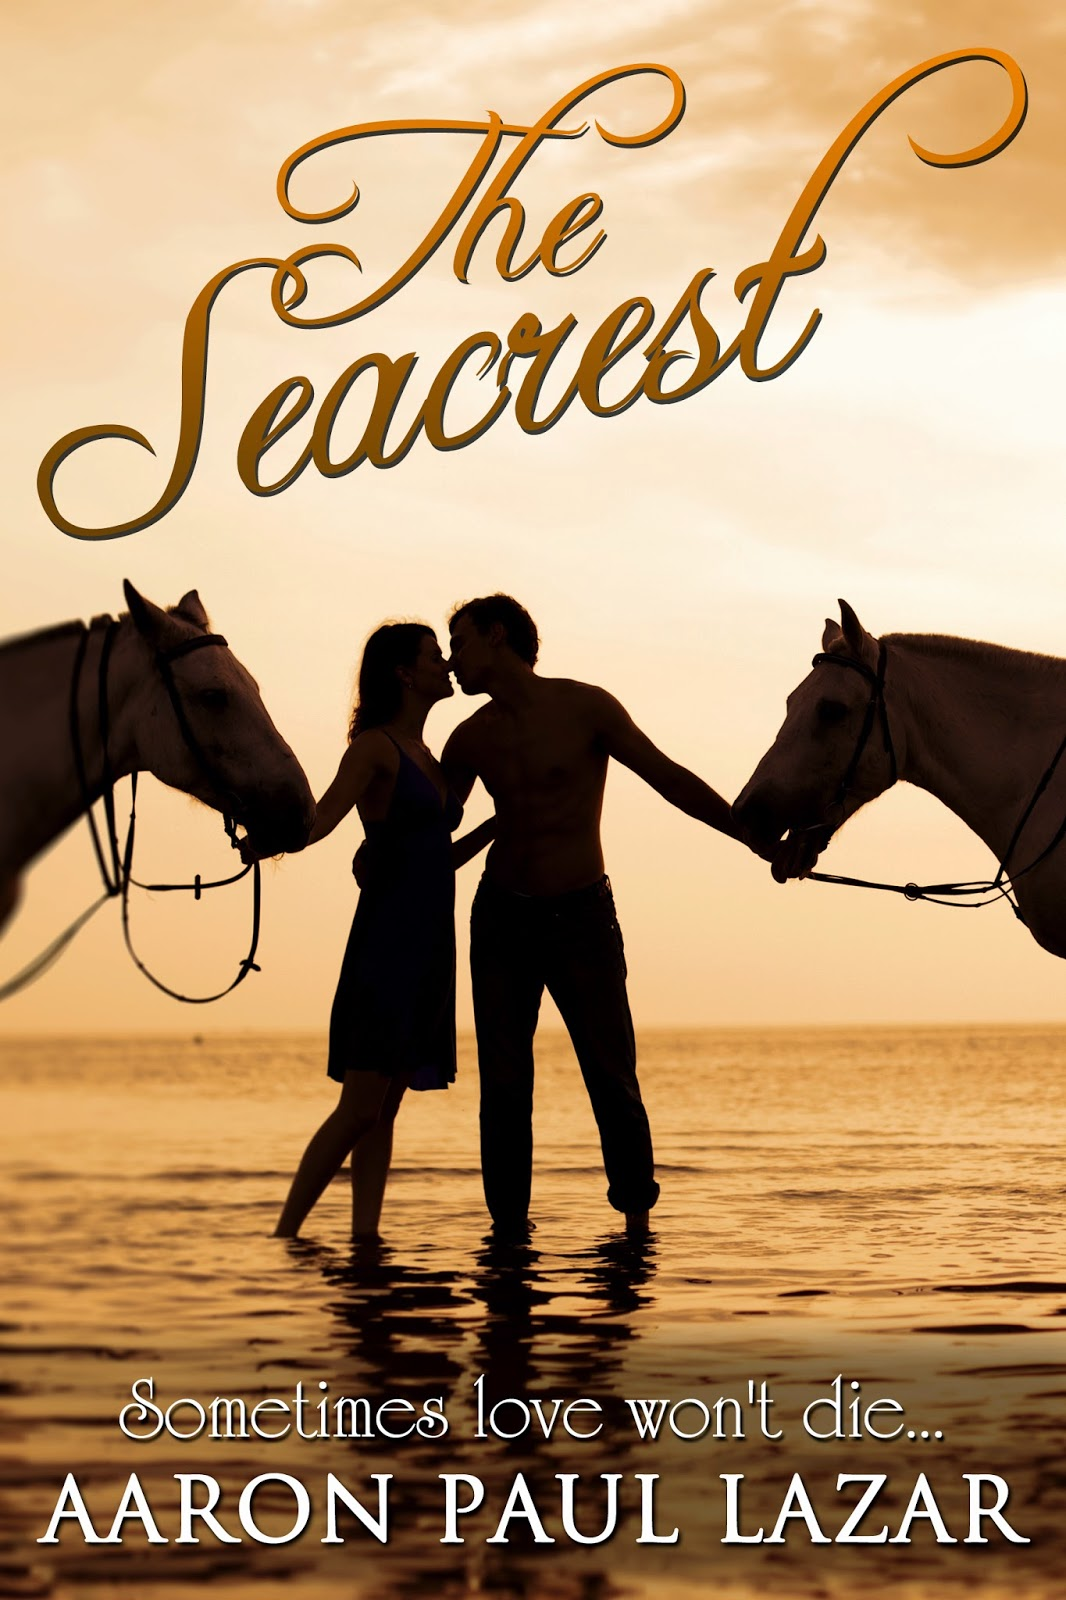 http://www.amazon.com/The-Seacrest-A-love-story-ebook/dp/B00G1TDBRI/ref=tmm_kin_title_0?ie=UTF8&qid=1419593564&sr=1-4